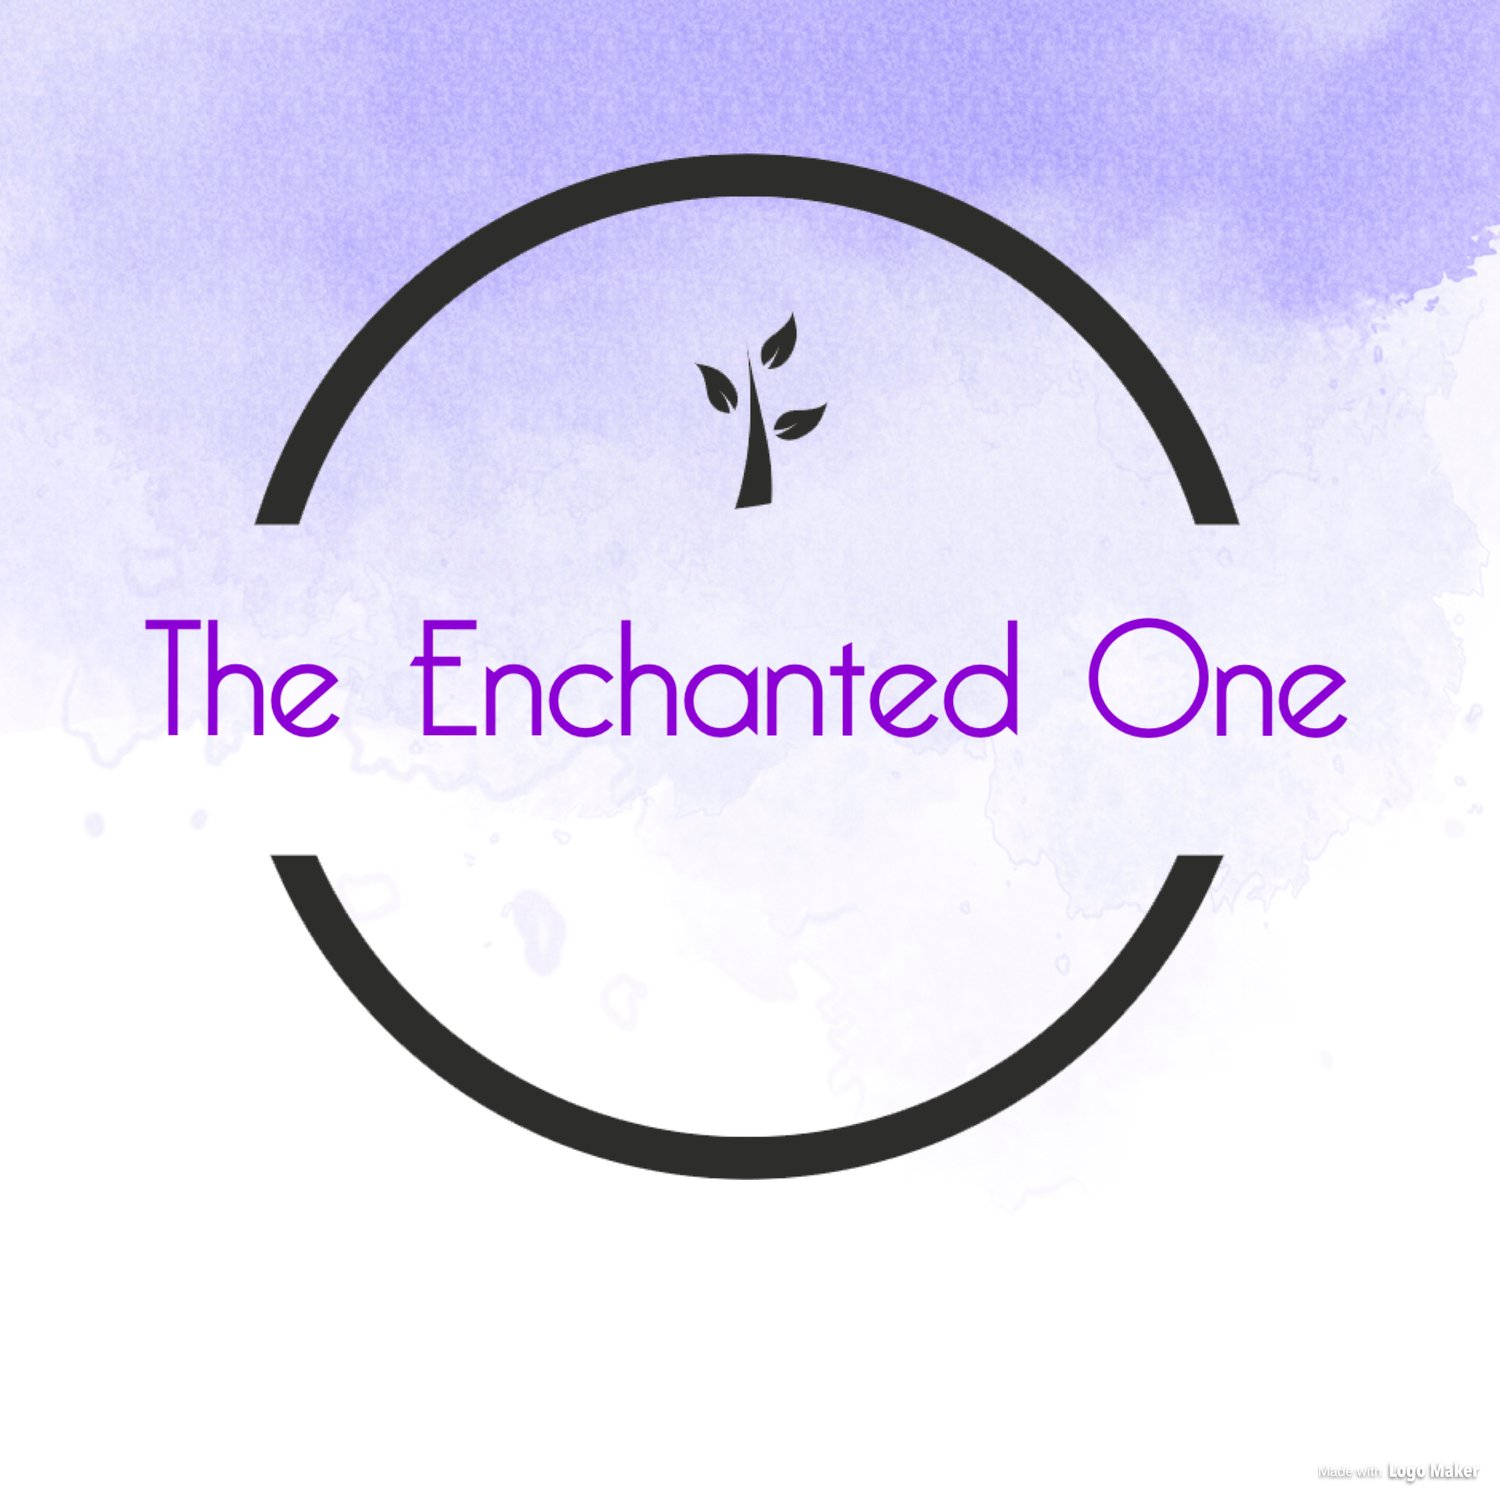 The Enchanted One